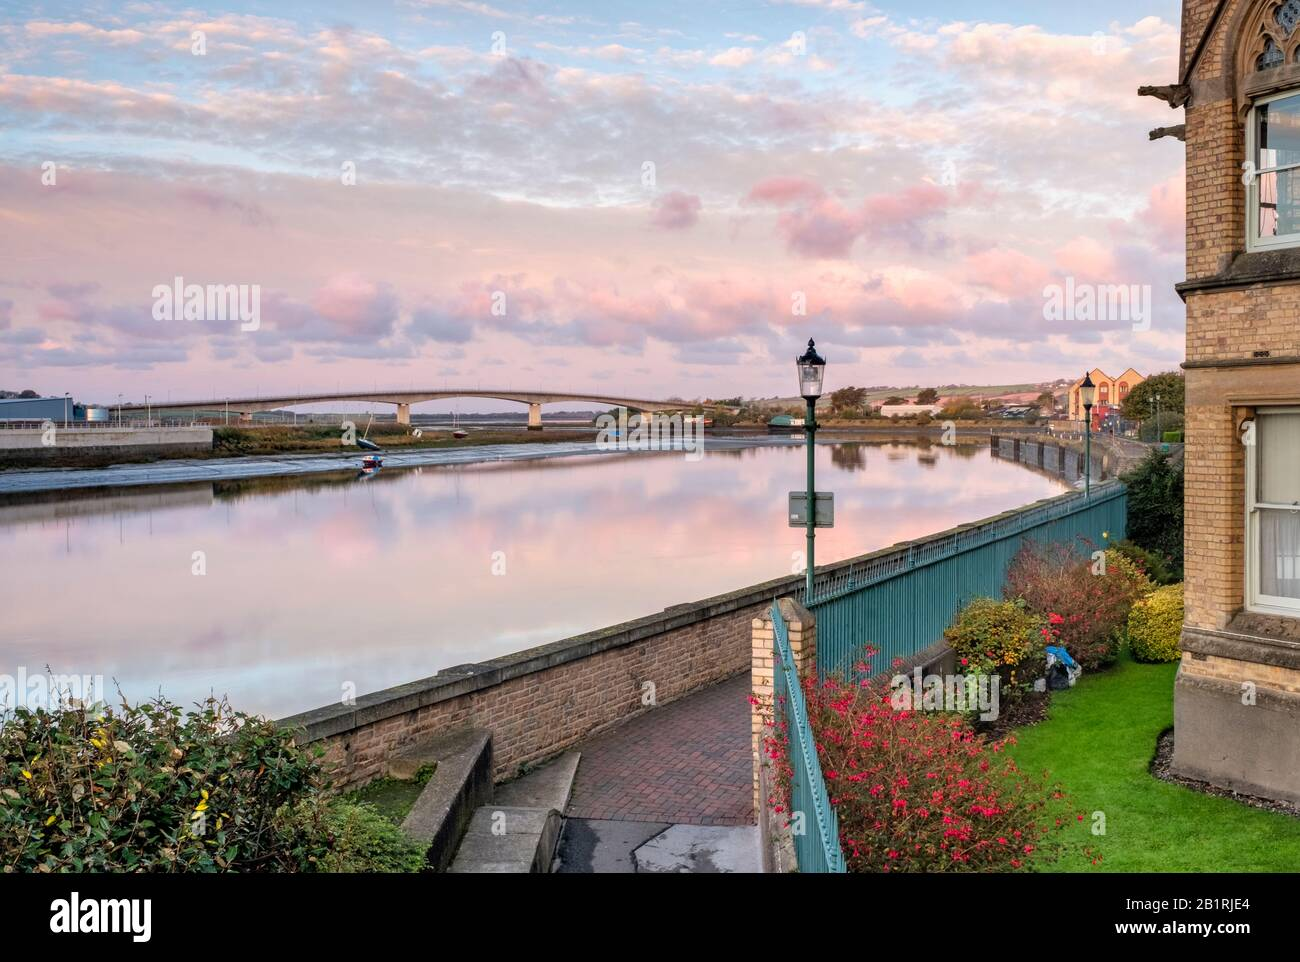 Views from the river banks of Barnstaple looking towards the Barnstaple Taw bridge, NorthDevon, South West, UK Stock Photo